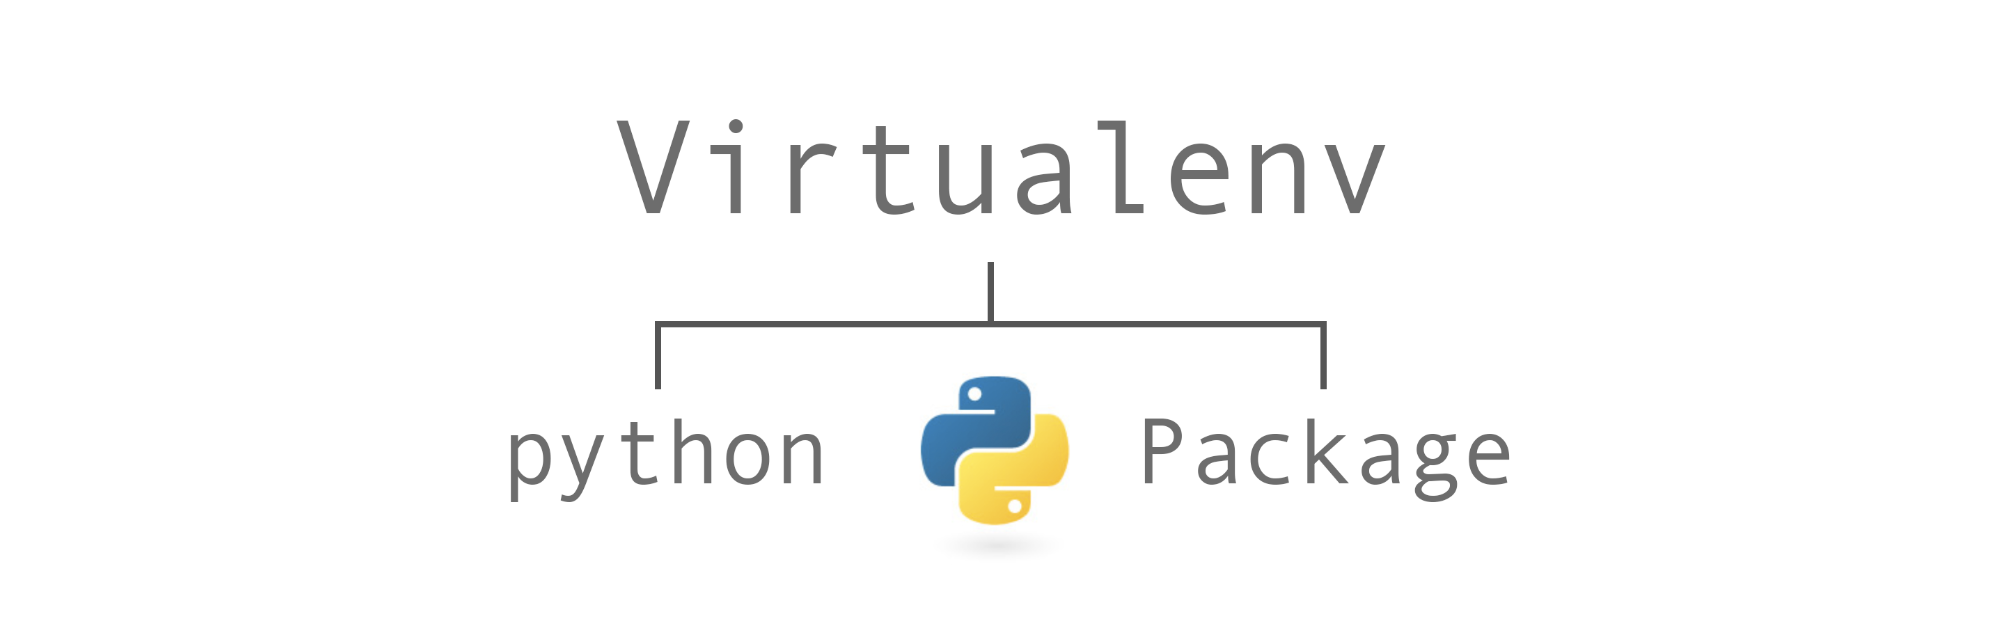 Container + Python 2 and Virtualenv: Does It Actually Work?